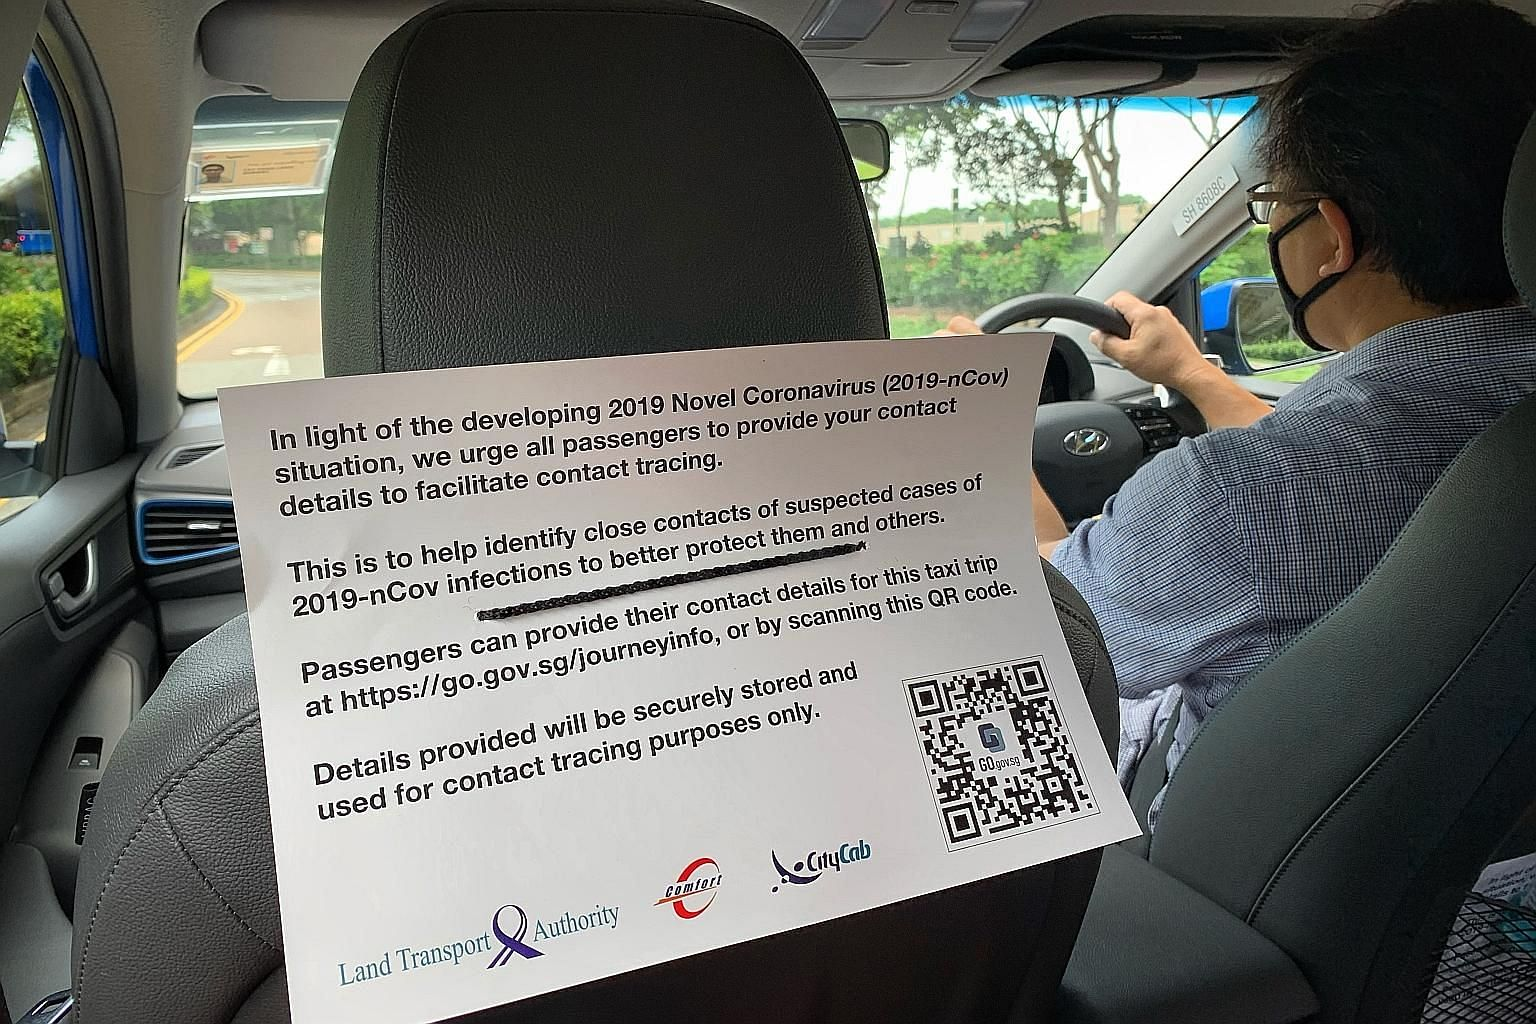 A notice in a ComfortDelGro taxi yesterday asking passengers to provide their contact details for the trip. All cabs will eventually have the QR codes, which are being rolled out across the industry from today. ST PHOTO: ARIFFIN JAMAR